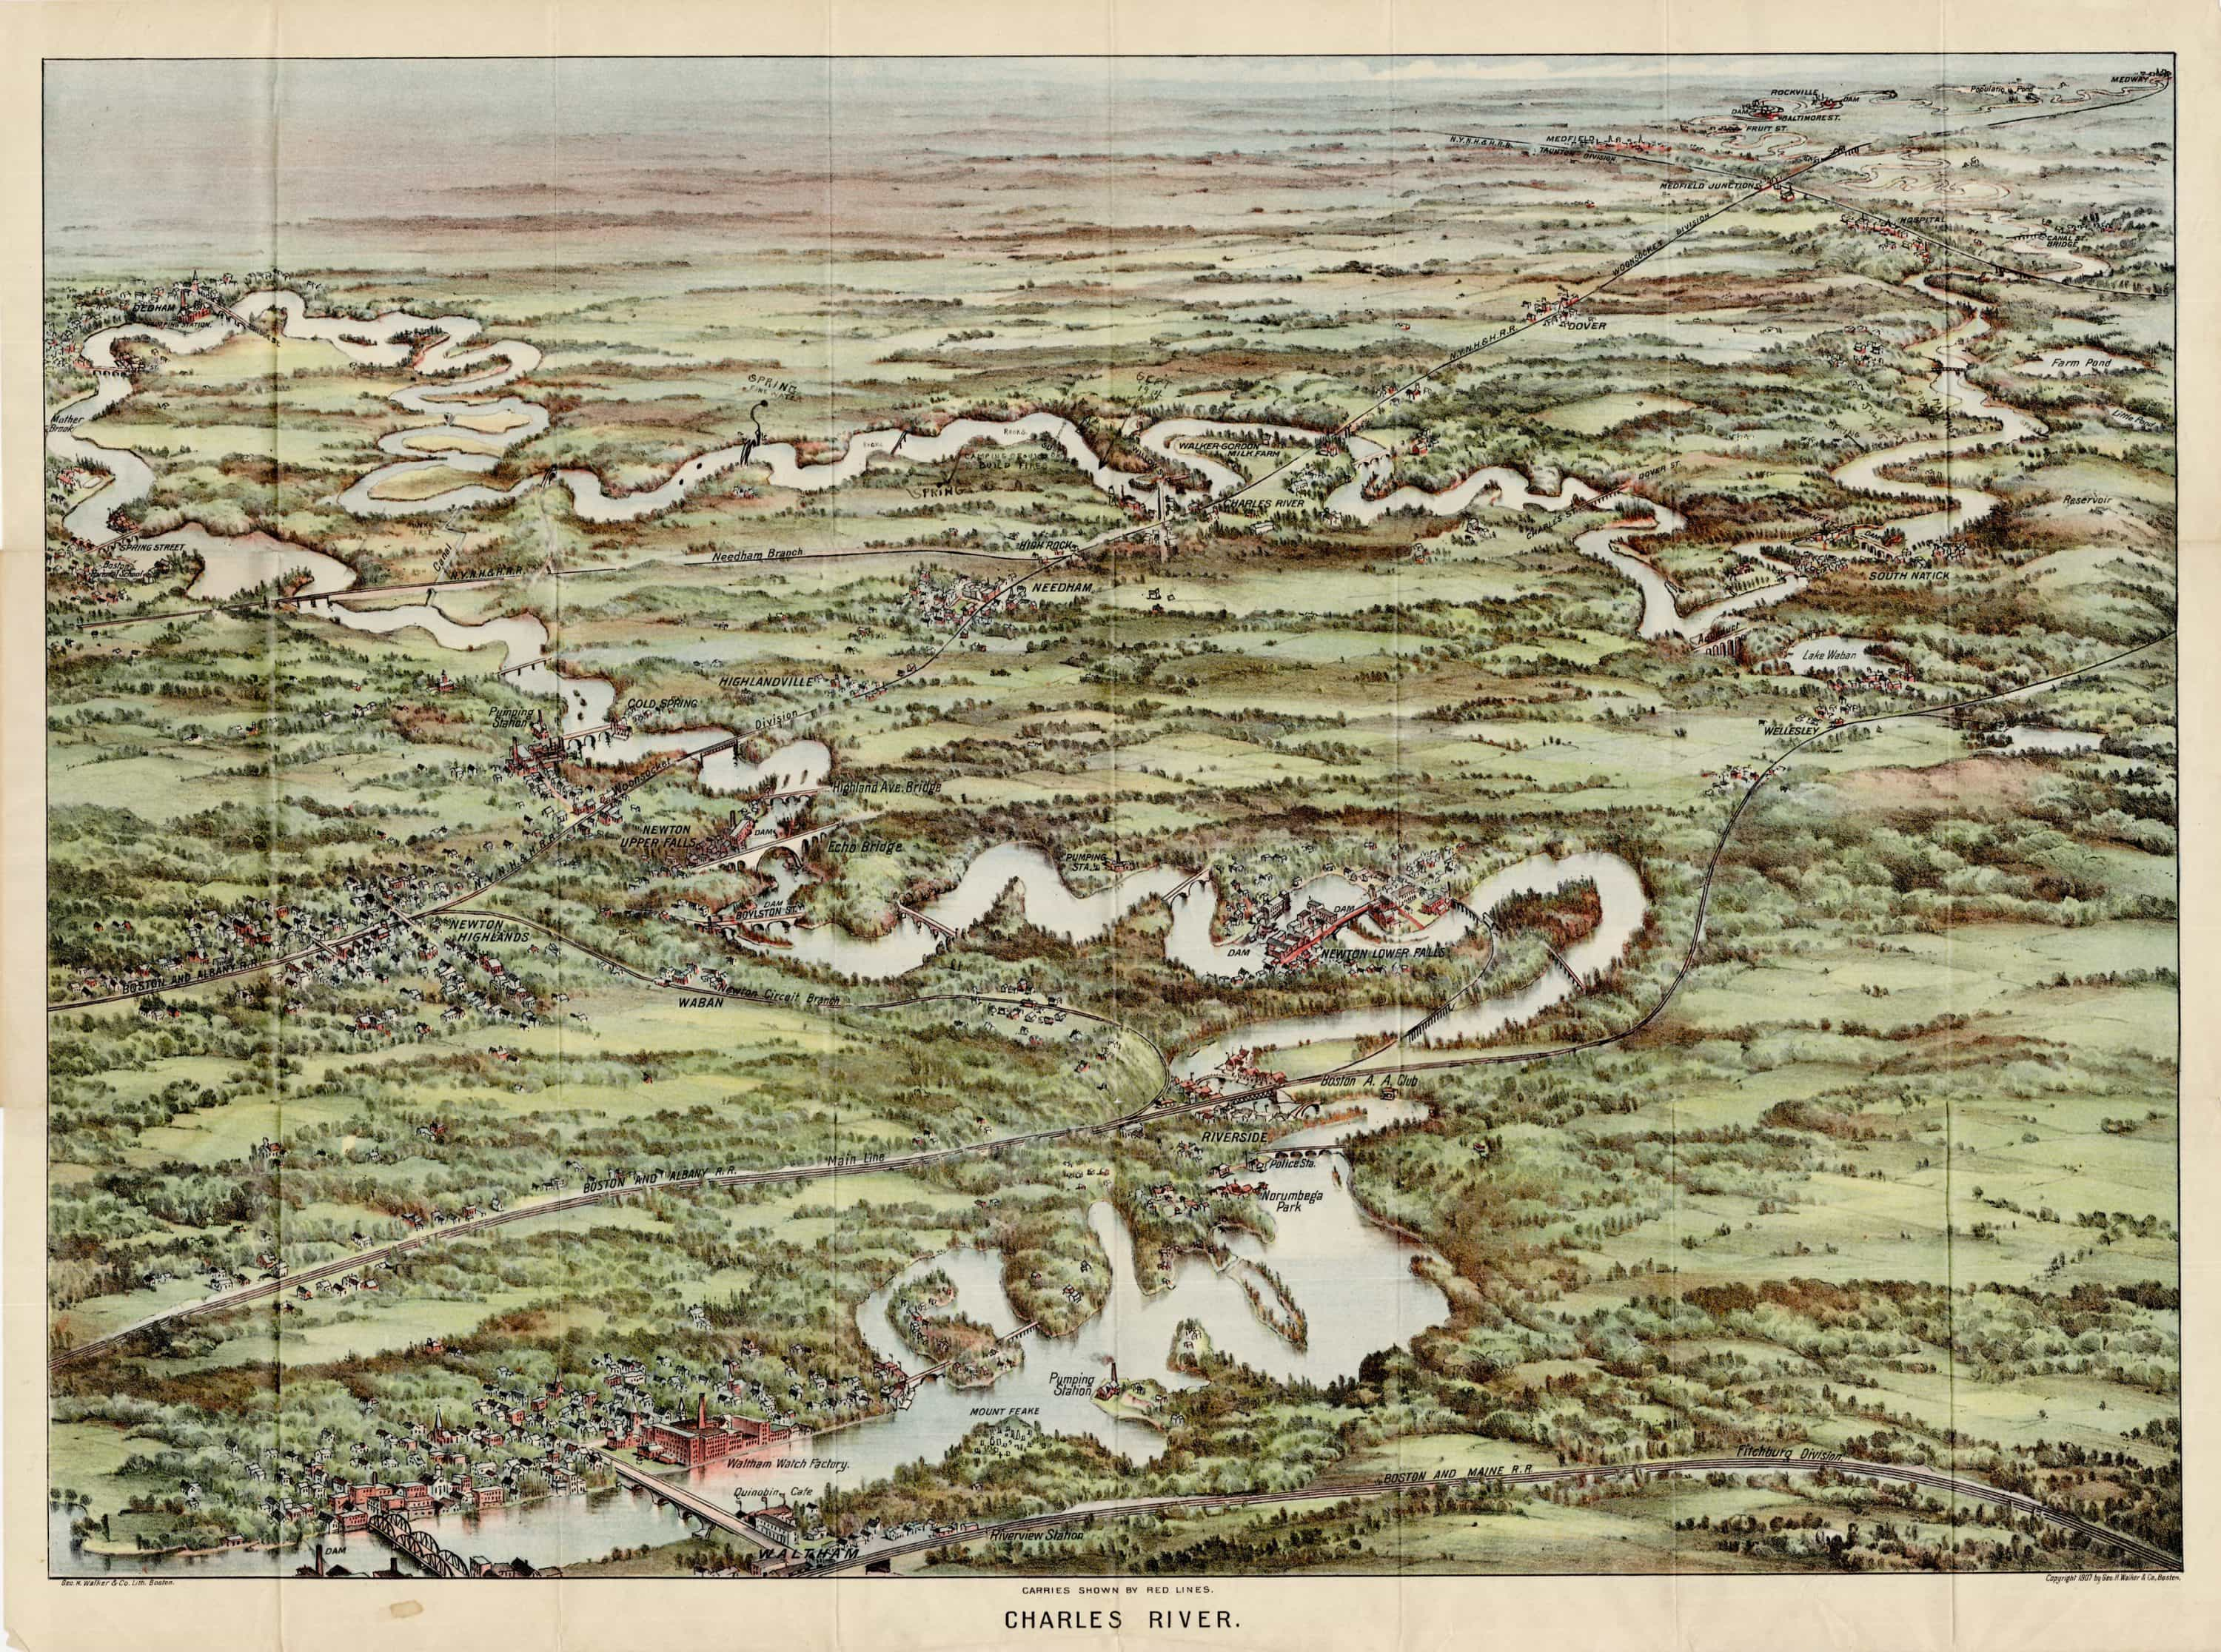 1907 birds-eye view of the Charles River, annotated by an early user ...